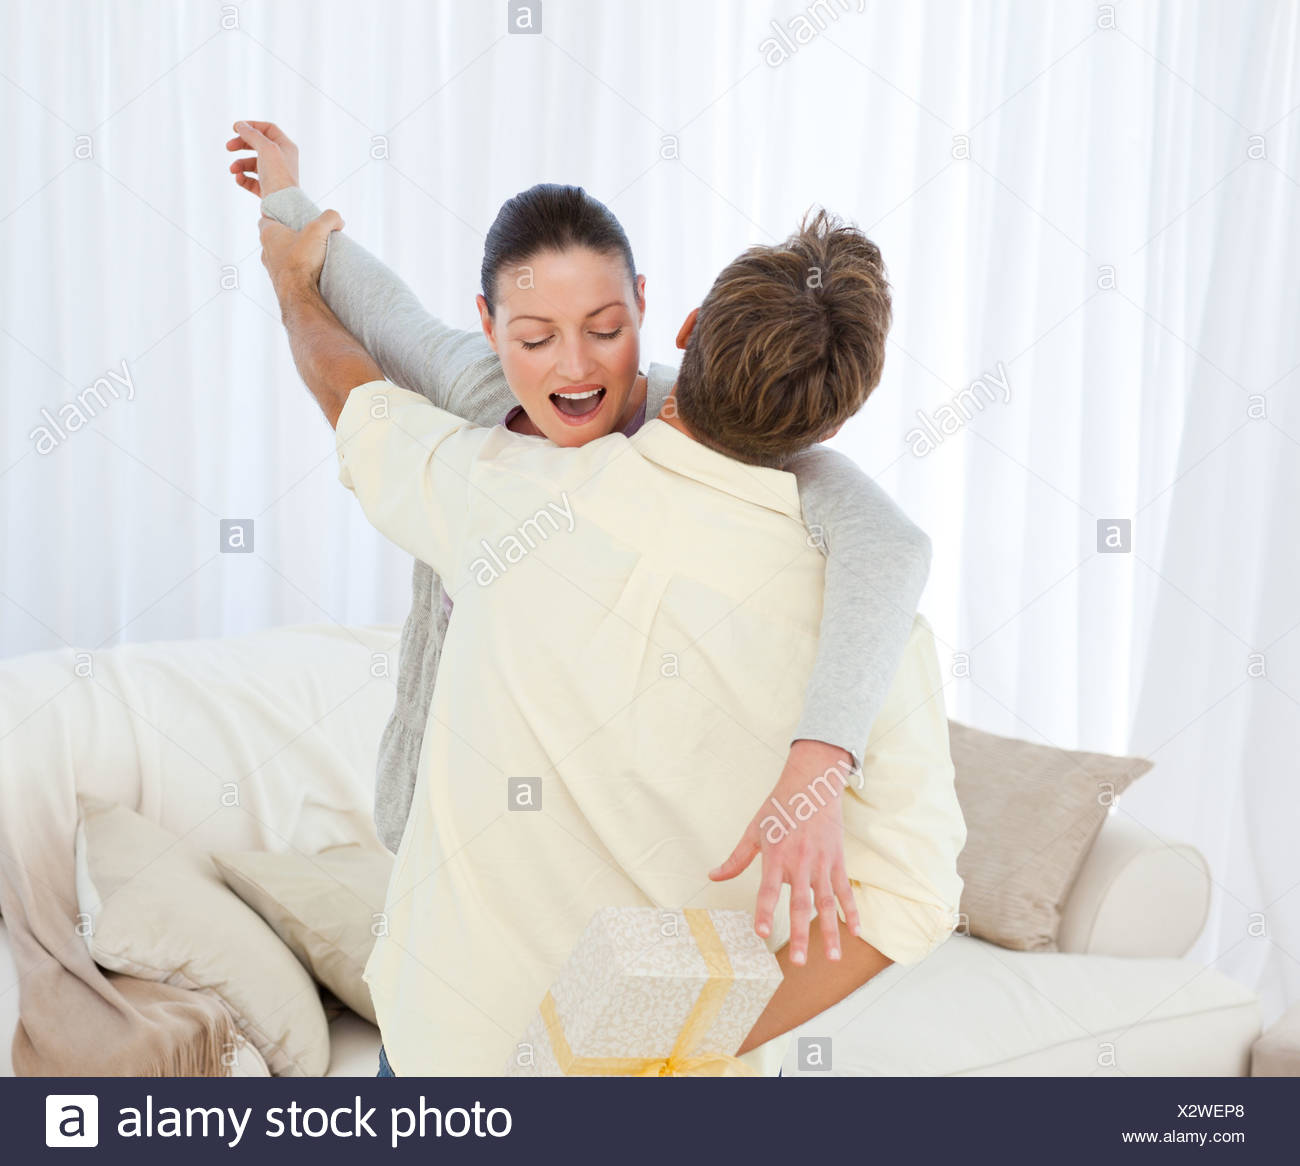 Excited woman catching a present hidden behind her boyfriend - Stock Image